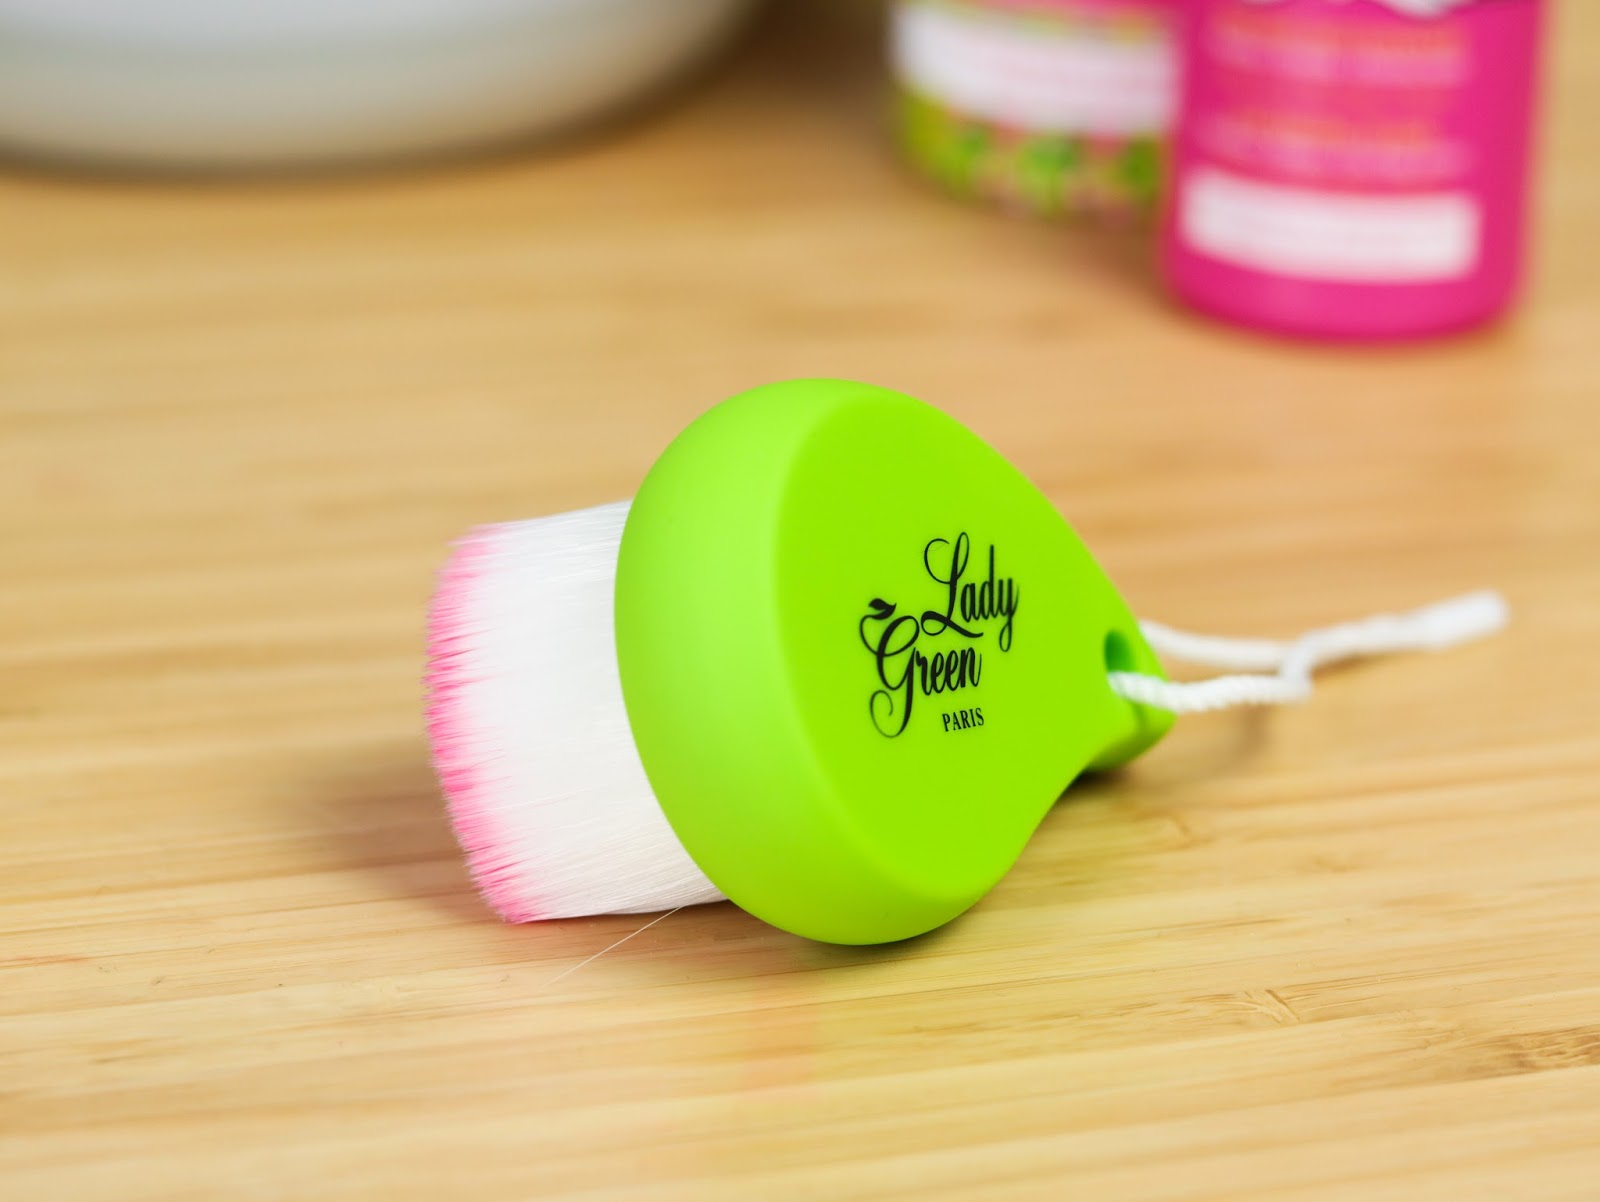 Les Brosses Cocooning Lady Green avis